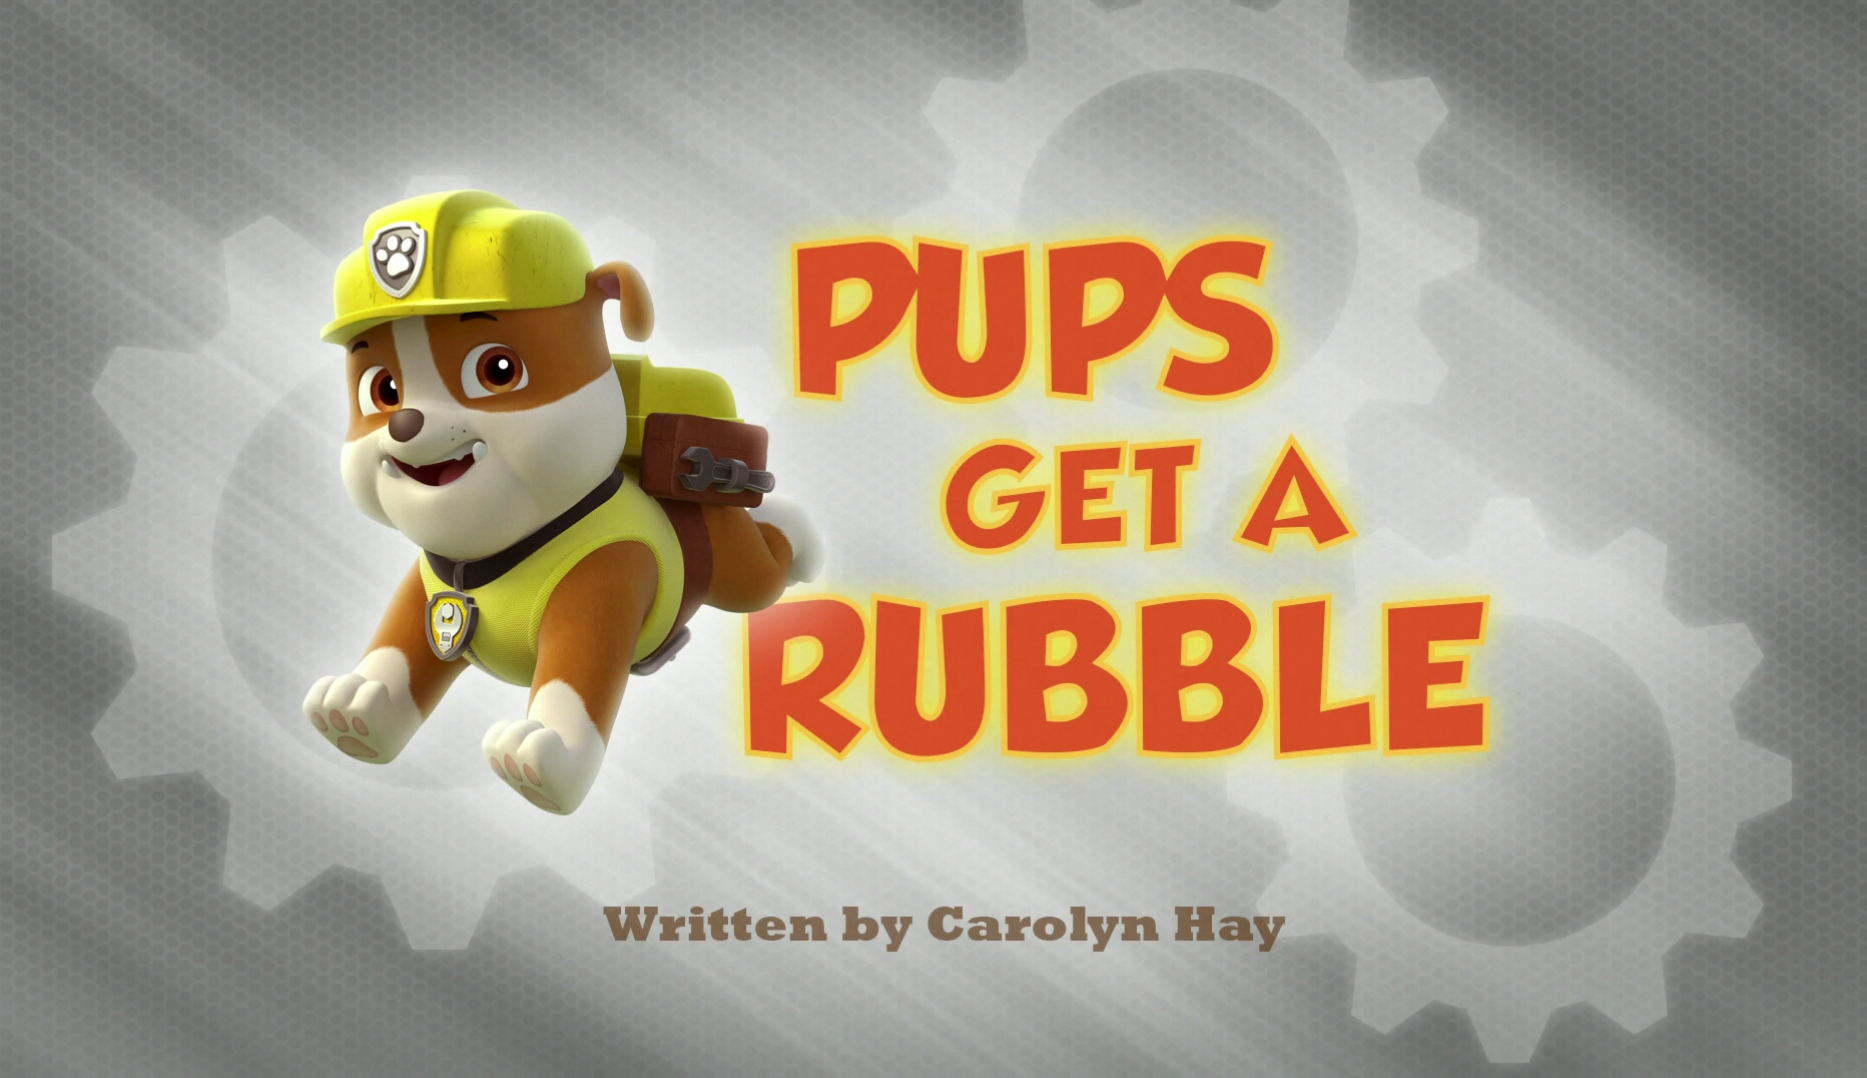 Get a Rubble PAW Patrol Pups